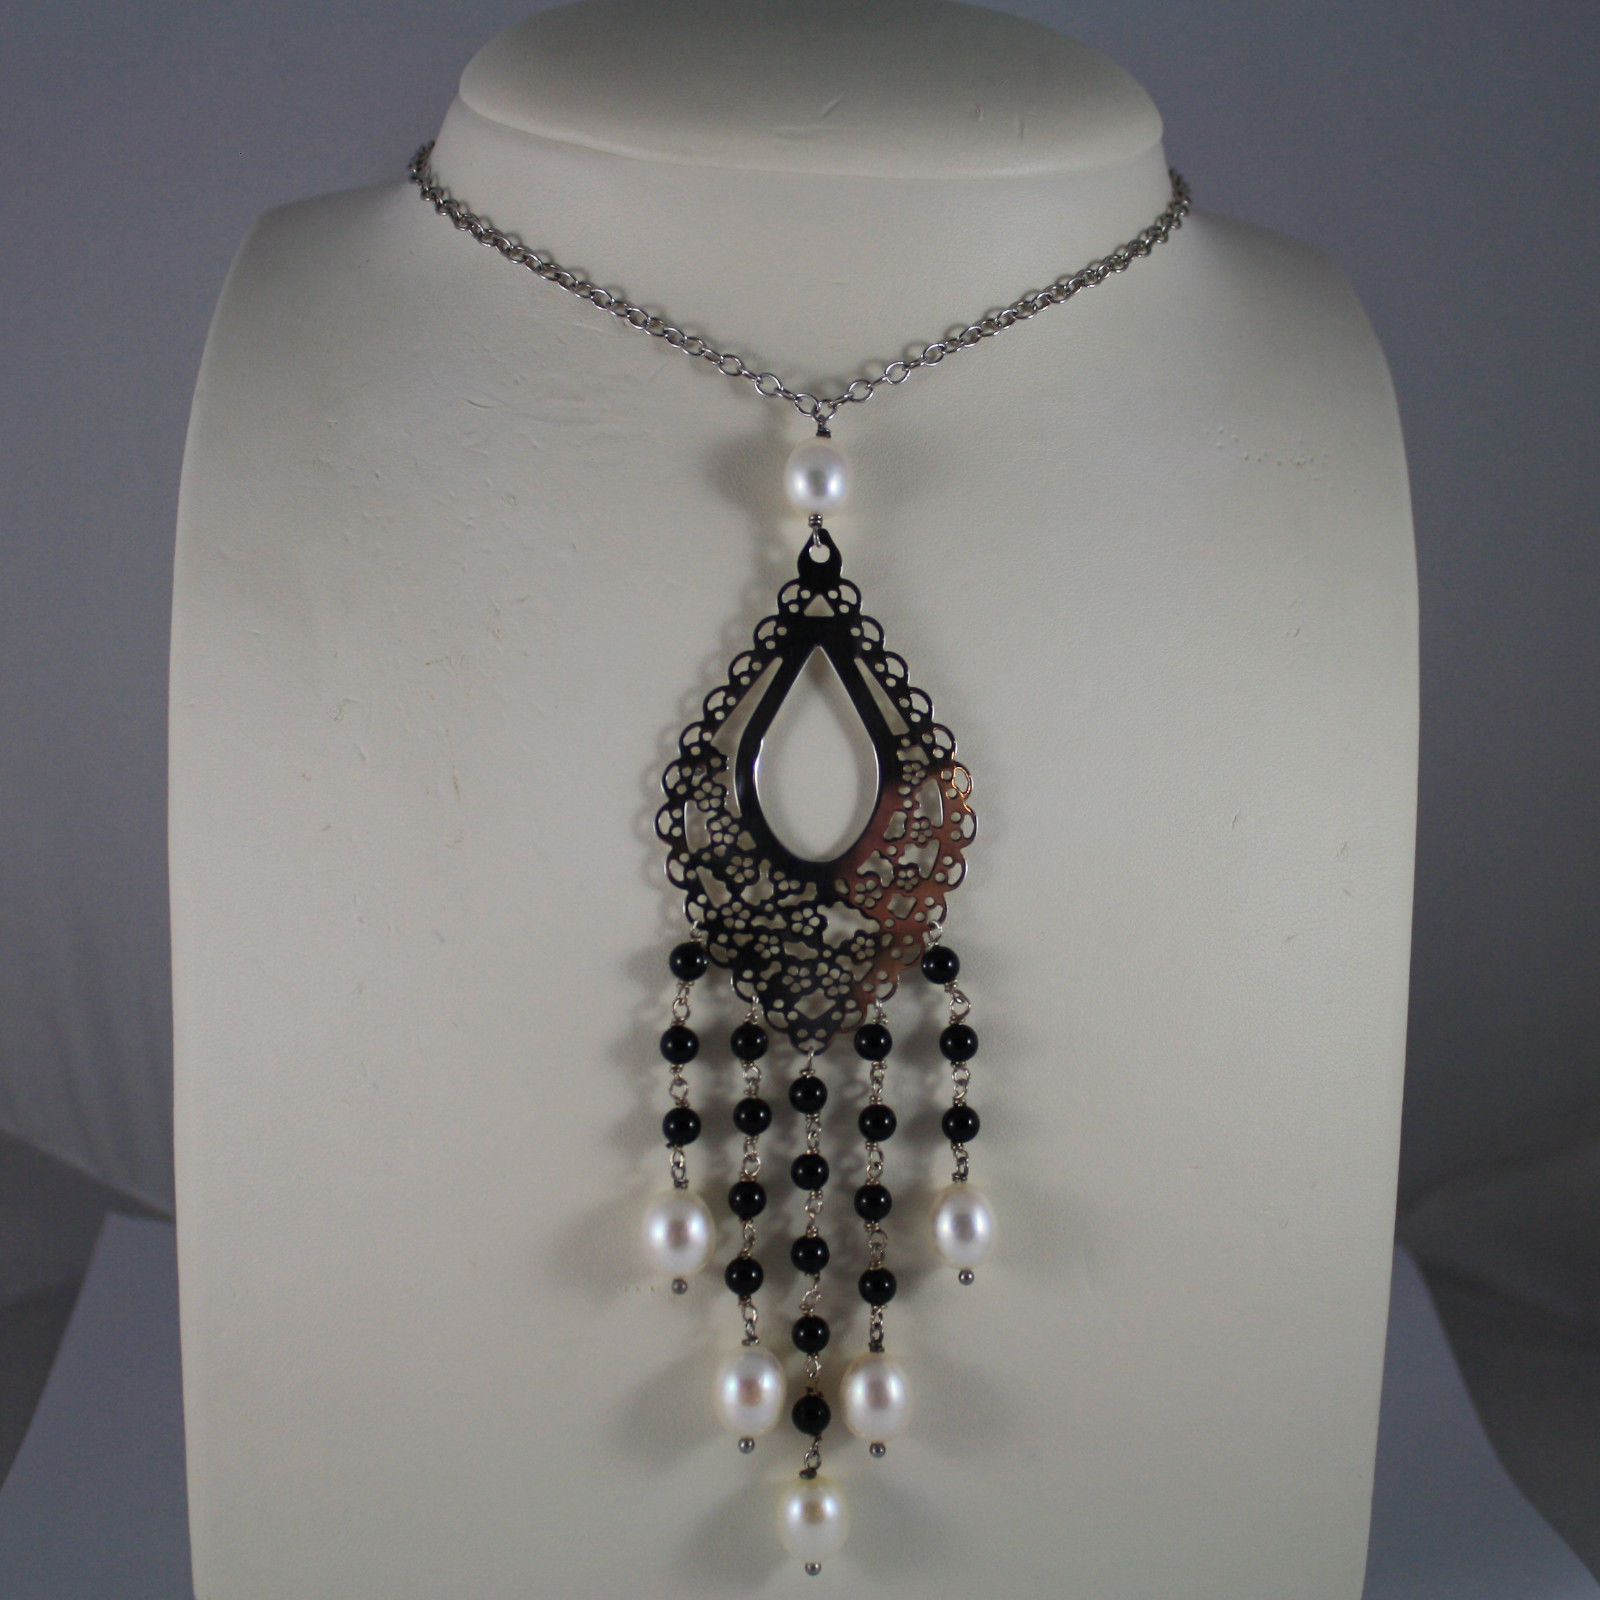 .925 SILVER RHODIUM NECKLACE WITH FRESHWATER WHITE PEARLS, BLACK ONYX AND DROP